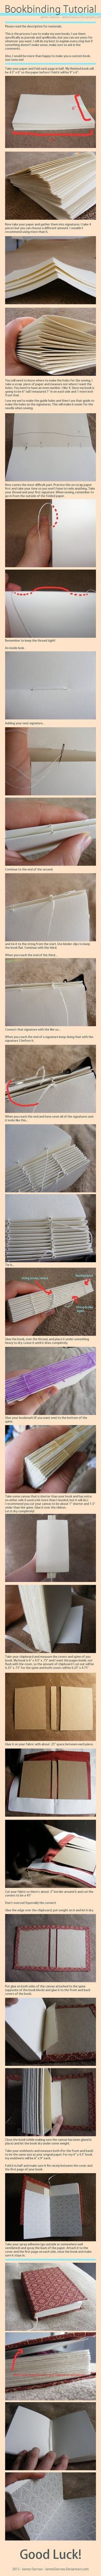 DIY Journal (Bookbinding Tutorial)~